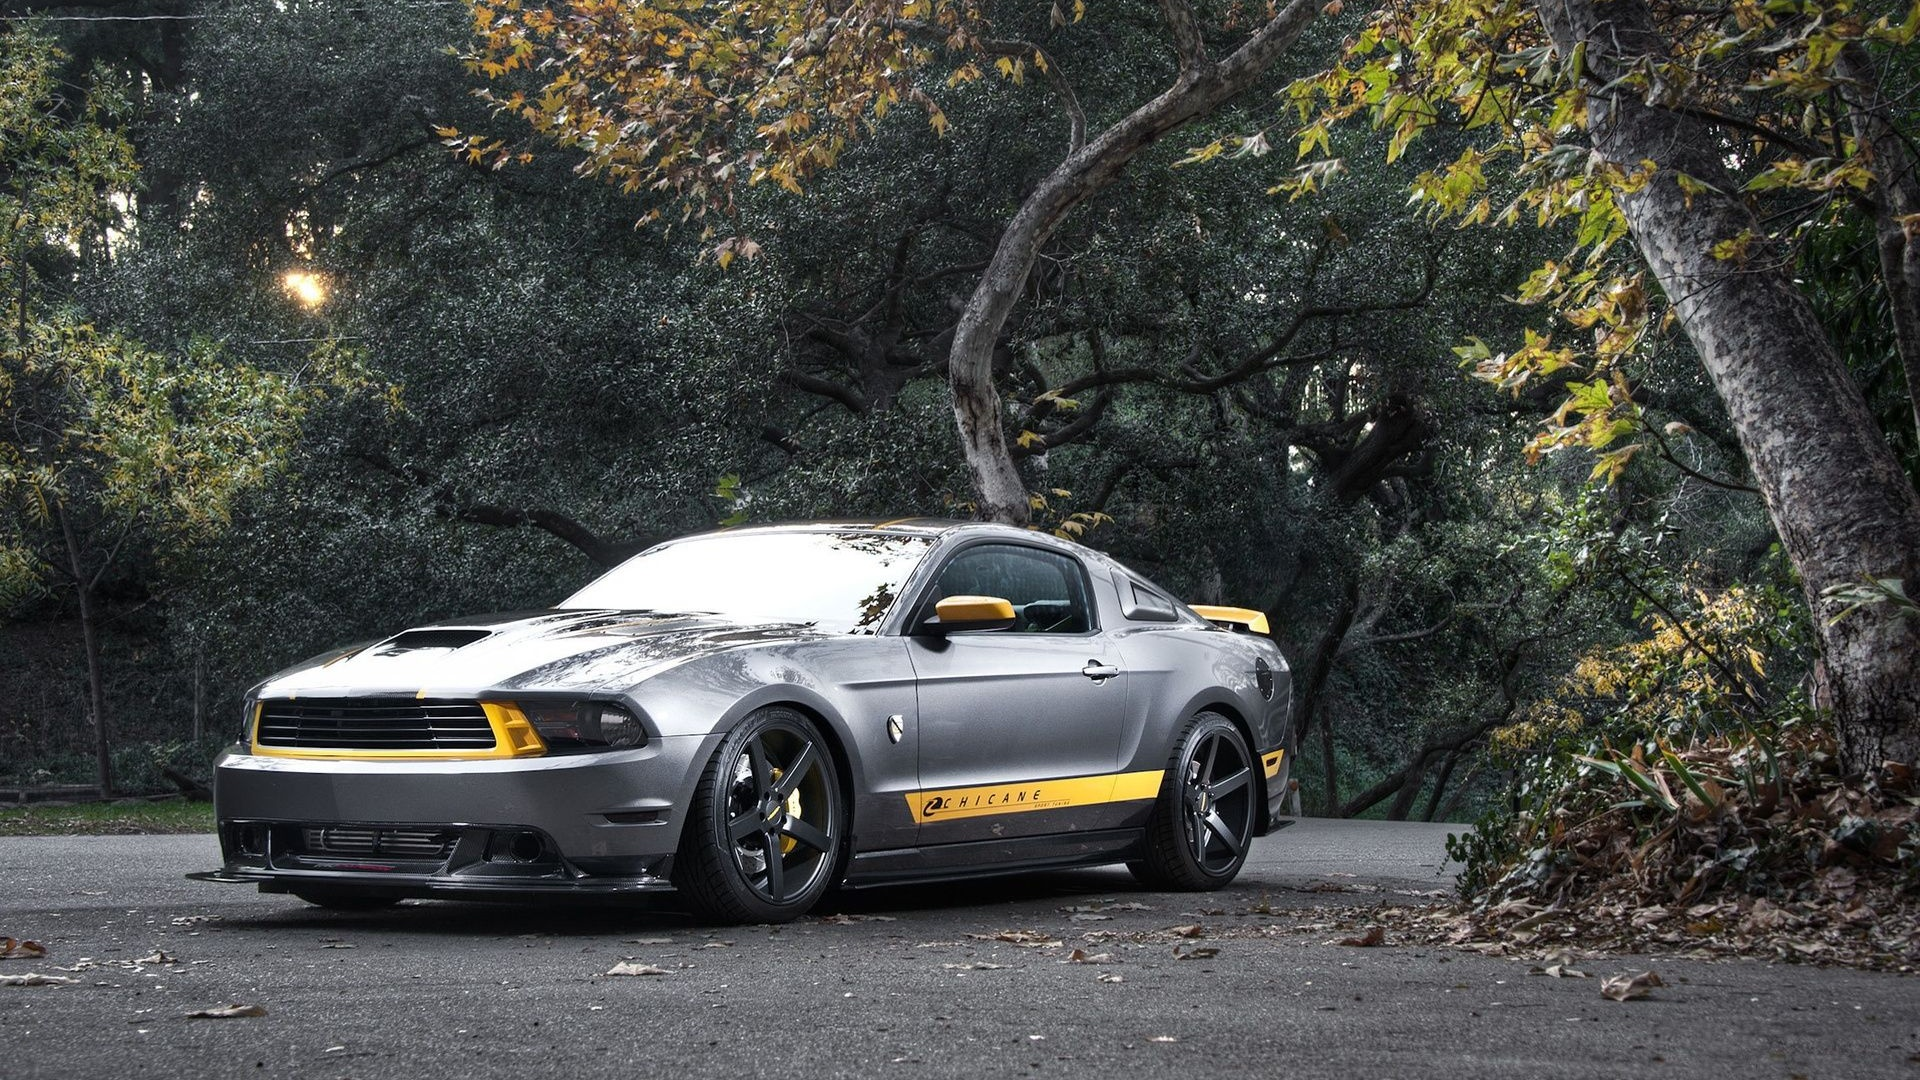 2019 Ford Mustang DUB Edition photo - 5